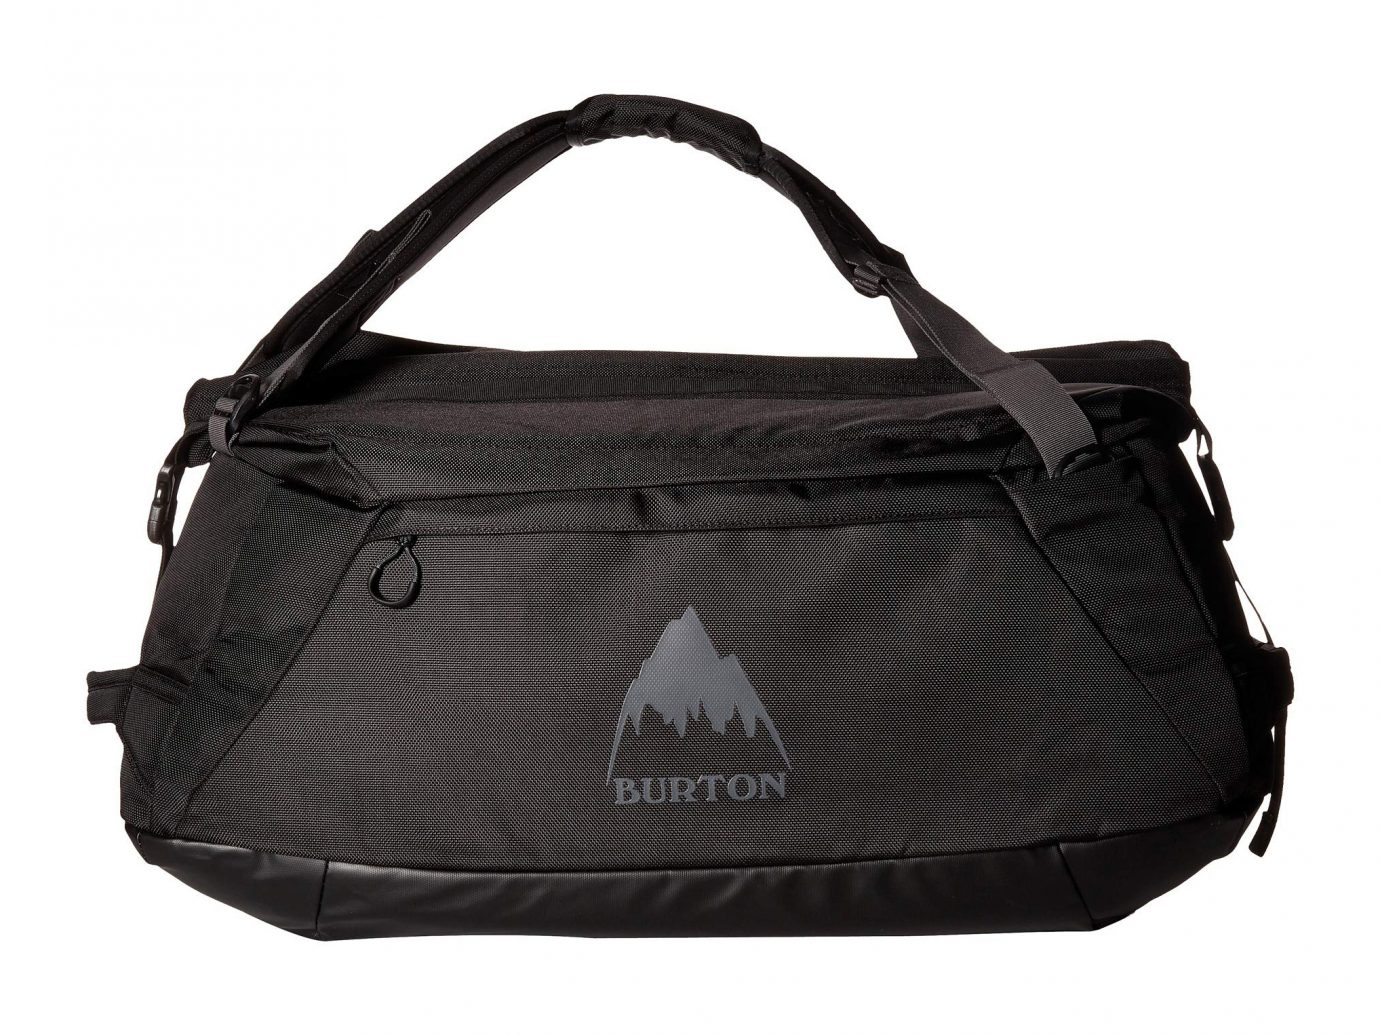 14 Best Duffel Bags For Travel